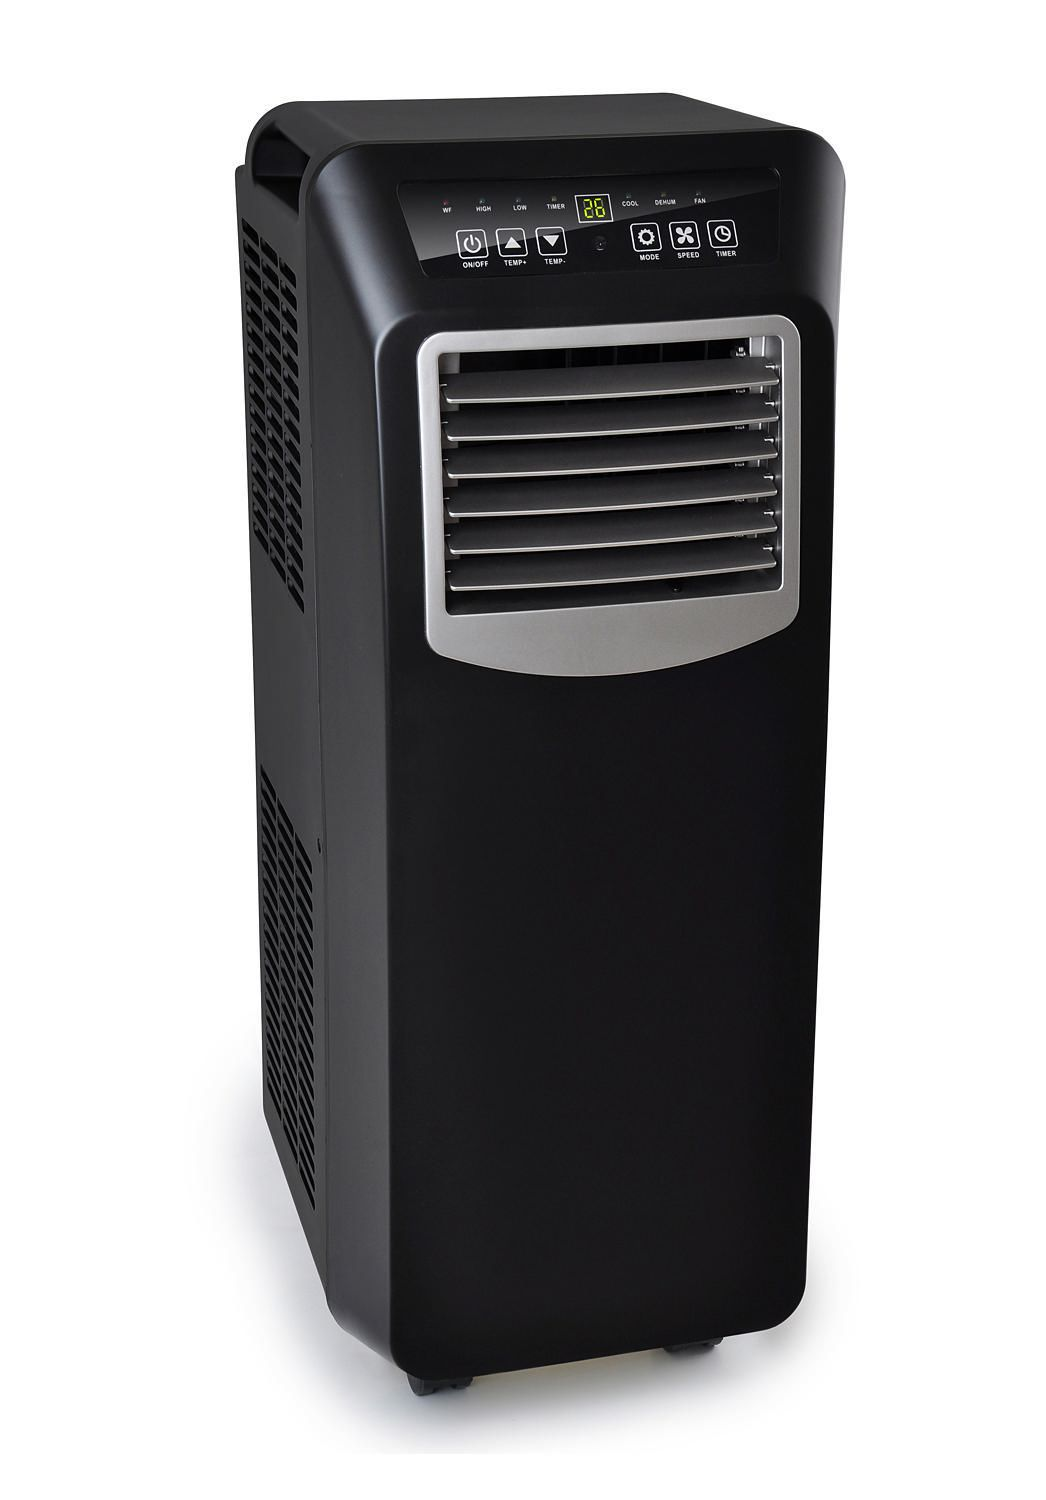 Royal Sovereign 12 000 Btu 3 In 1 Portable Air Conditioner